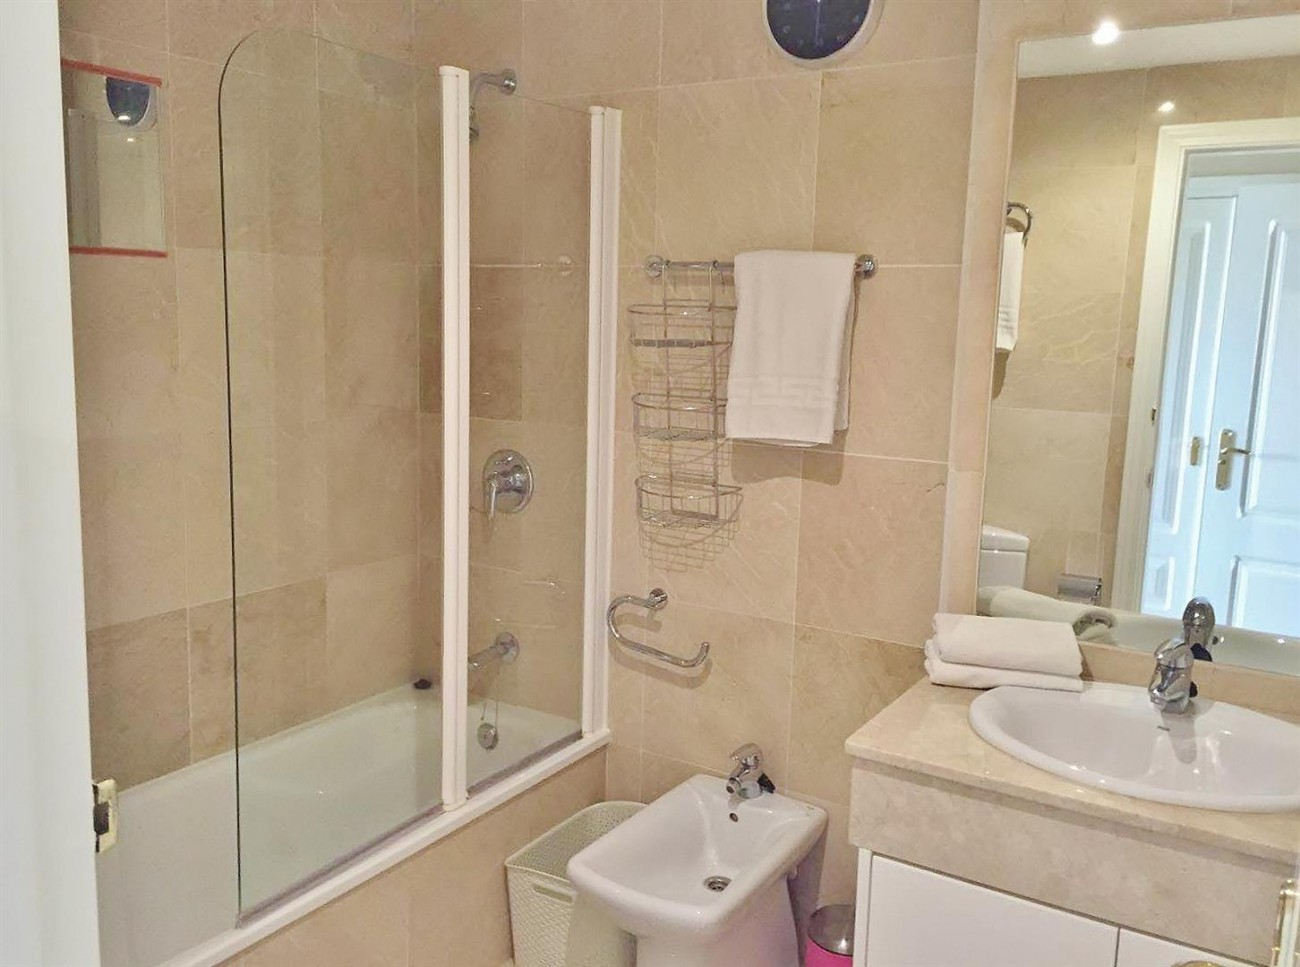 3 Bedrooms apartment for rent East Marbella (5) (Large)